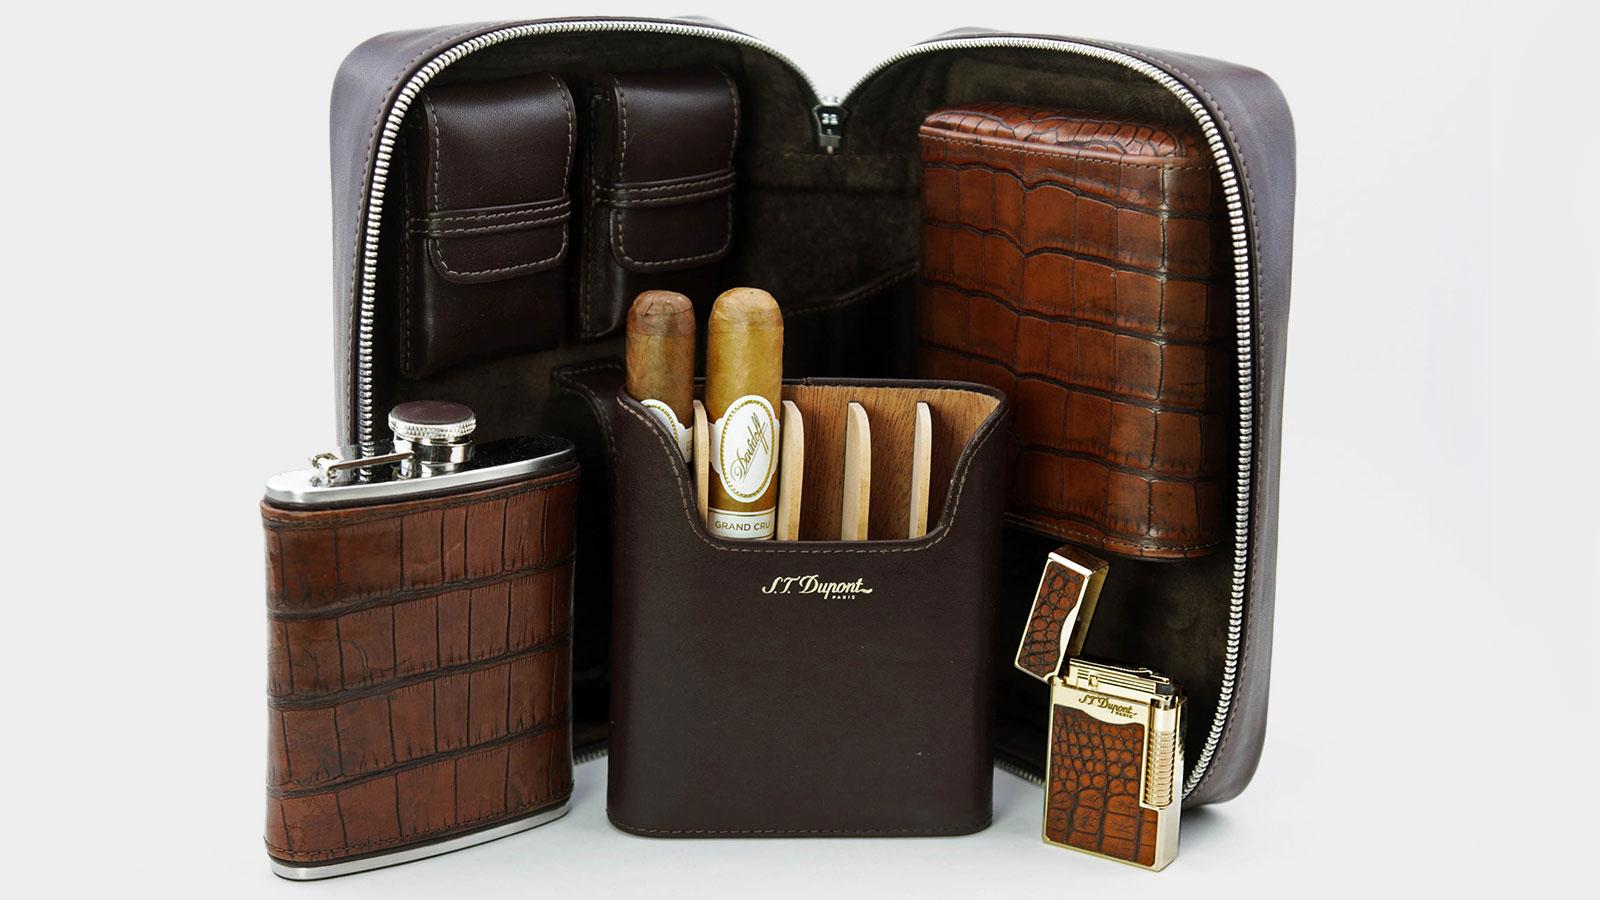 Brizard Partners with S.T. Dupont, Elie Bleu, Padrón and Rocky Patel for New Accessories Collections